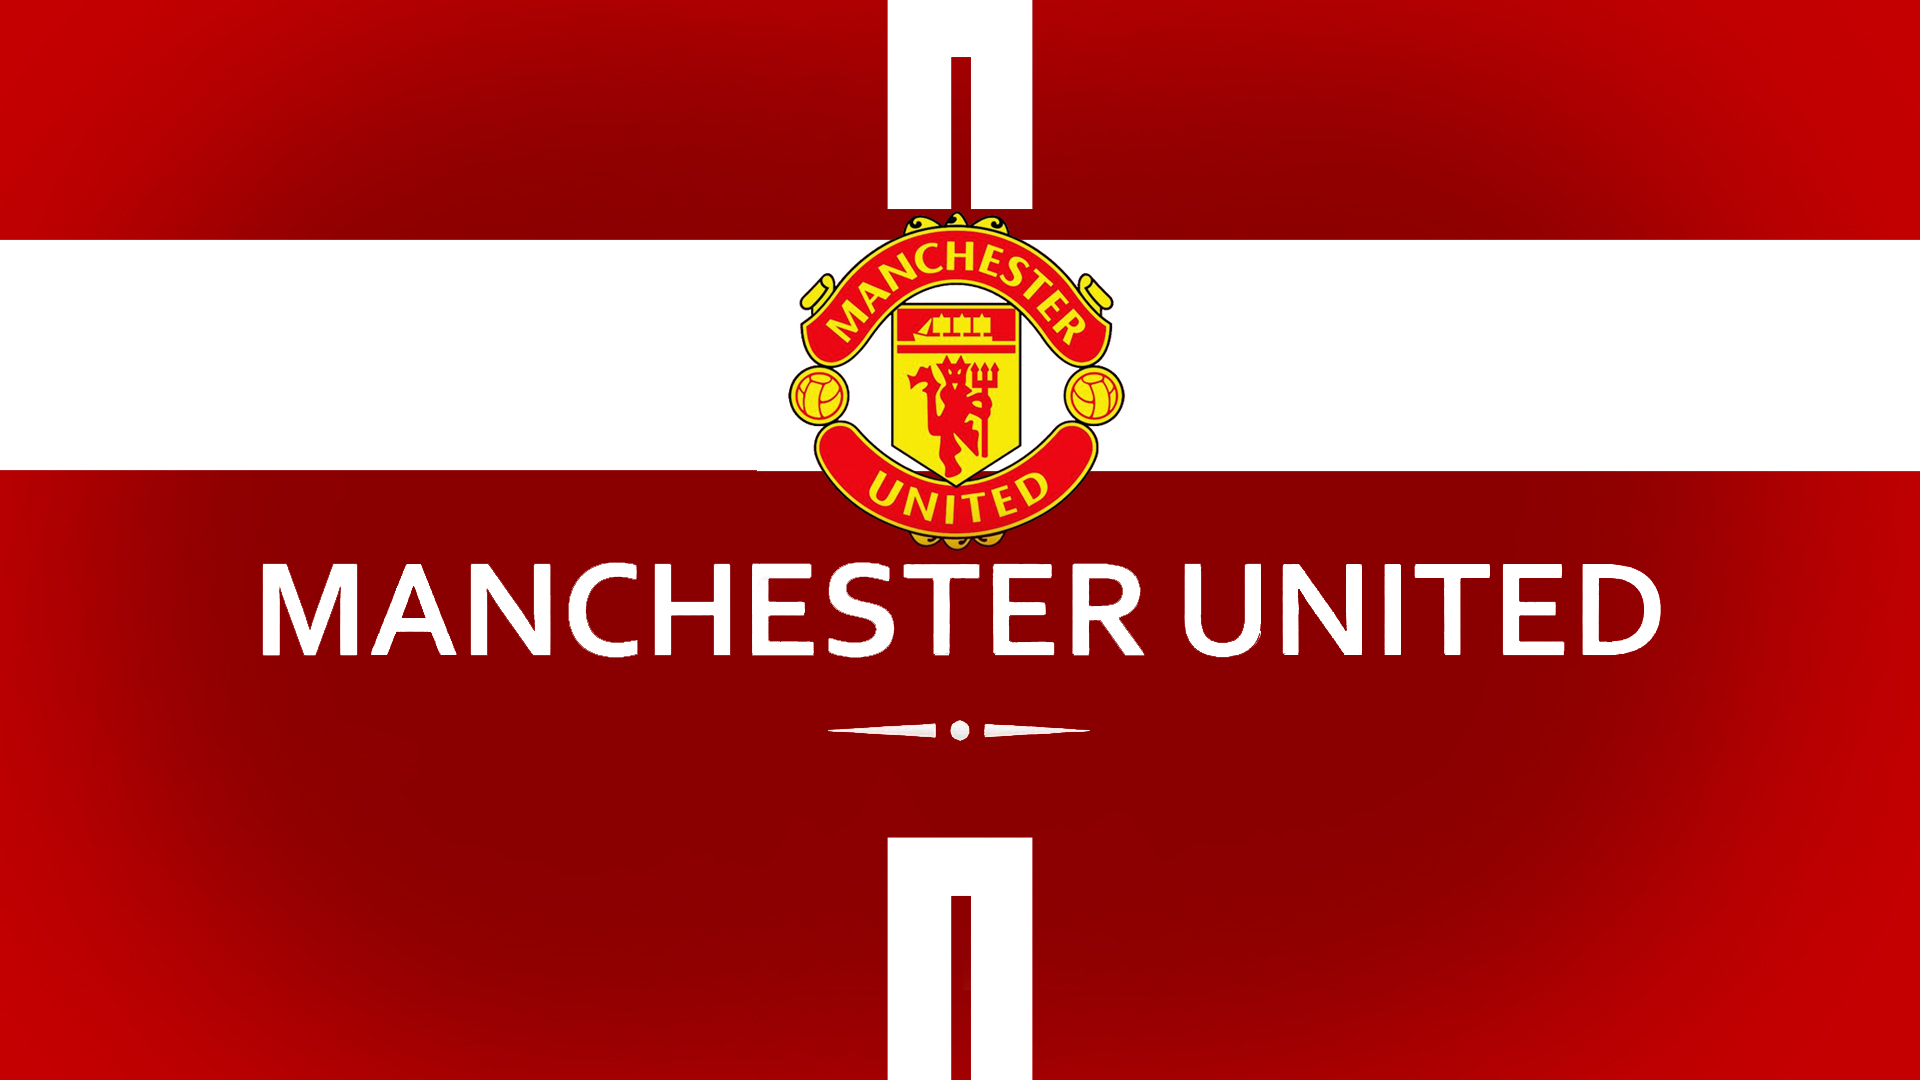 manchester united wallpapers backgrounds 16 hd wallpapers hd images hd pictures manchester united wallpapers